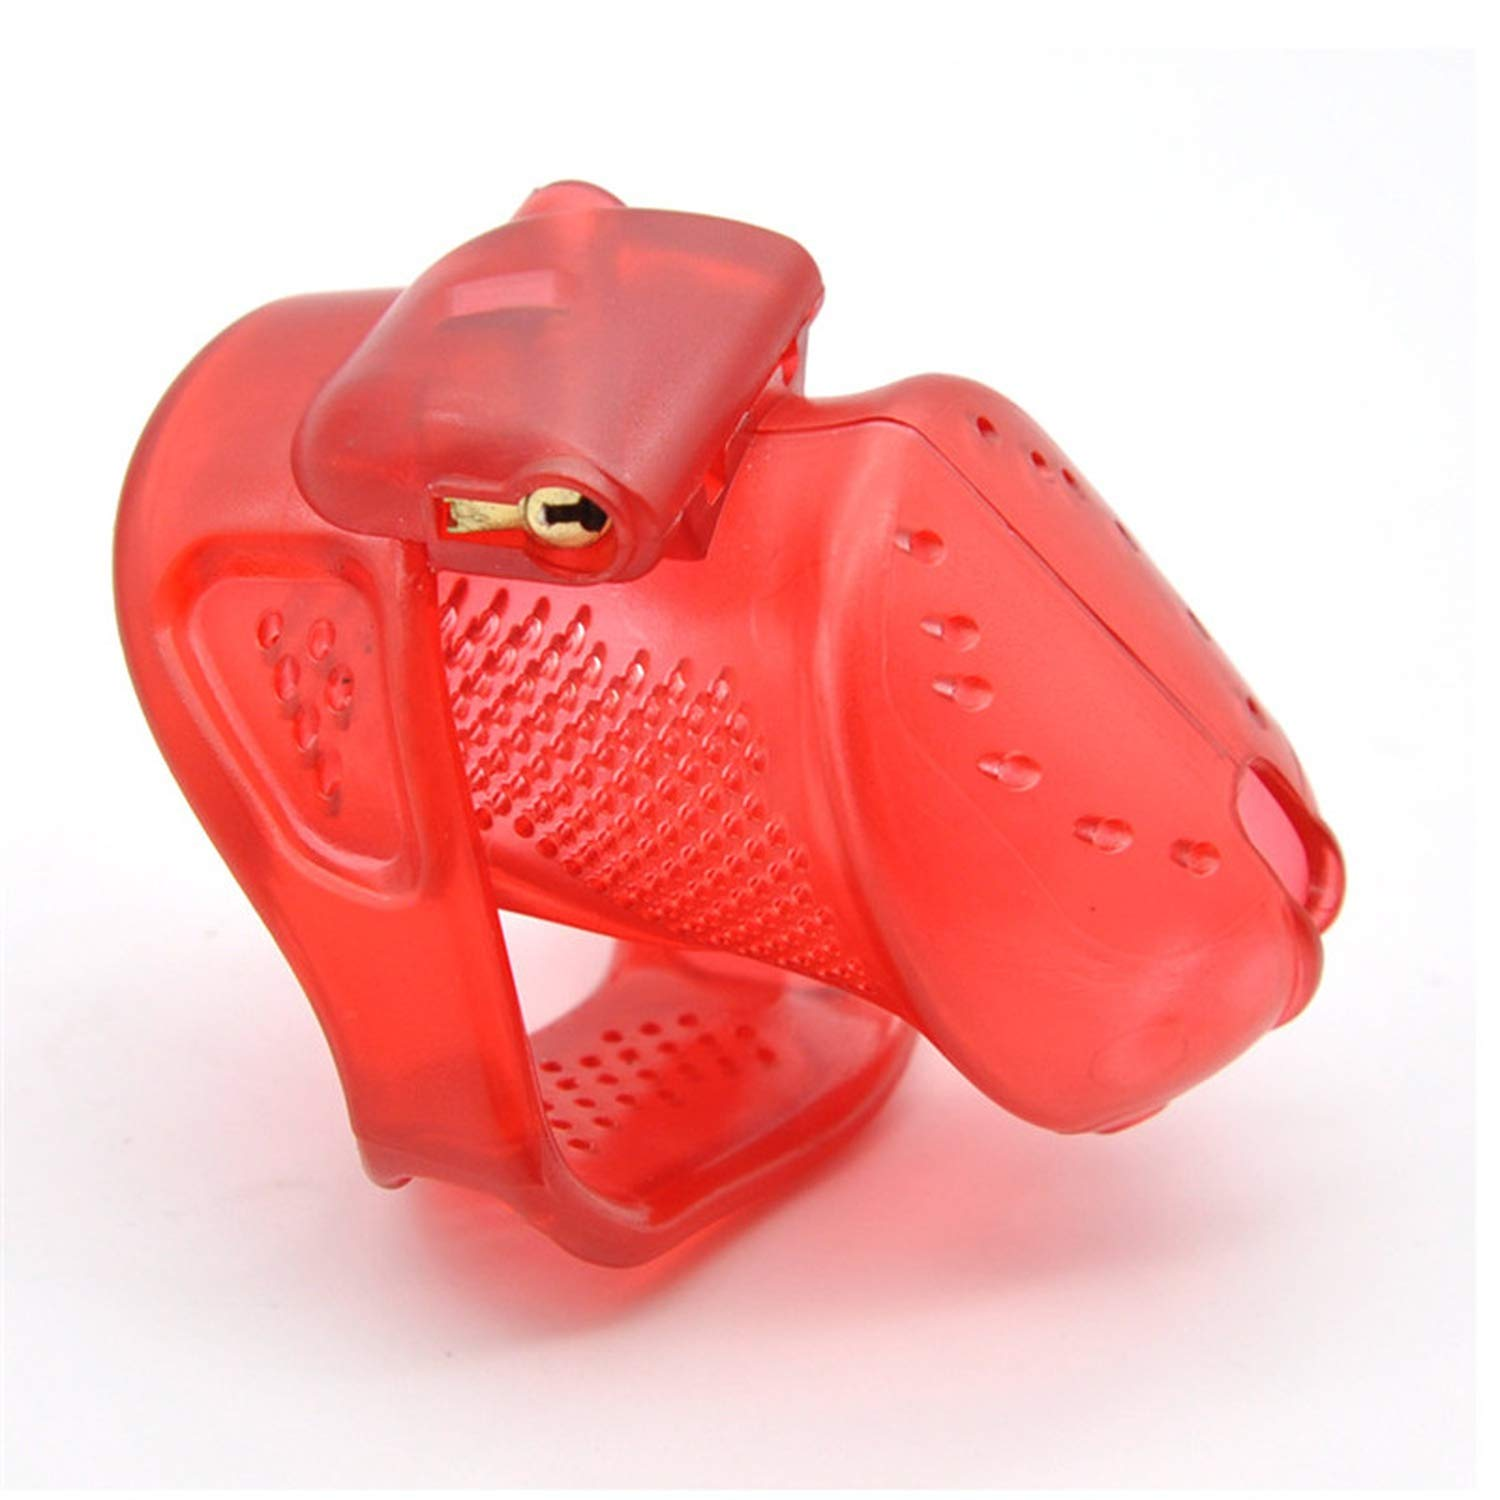 Amazon.com: Screaming O Perforated Design Male Chastity Cage ...